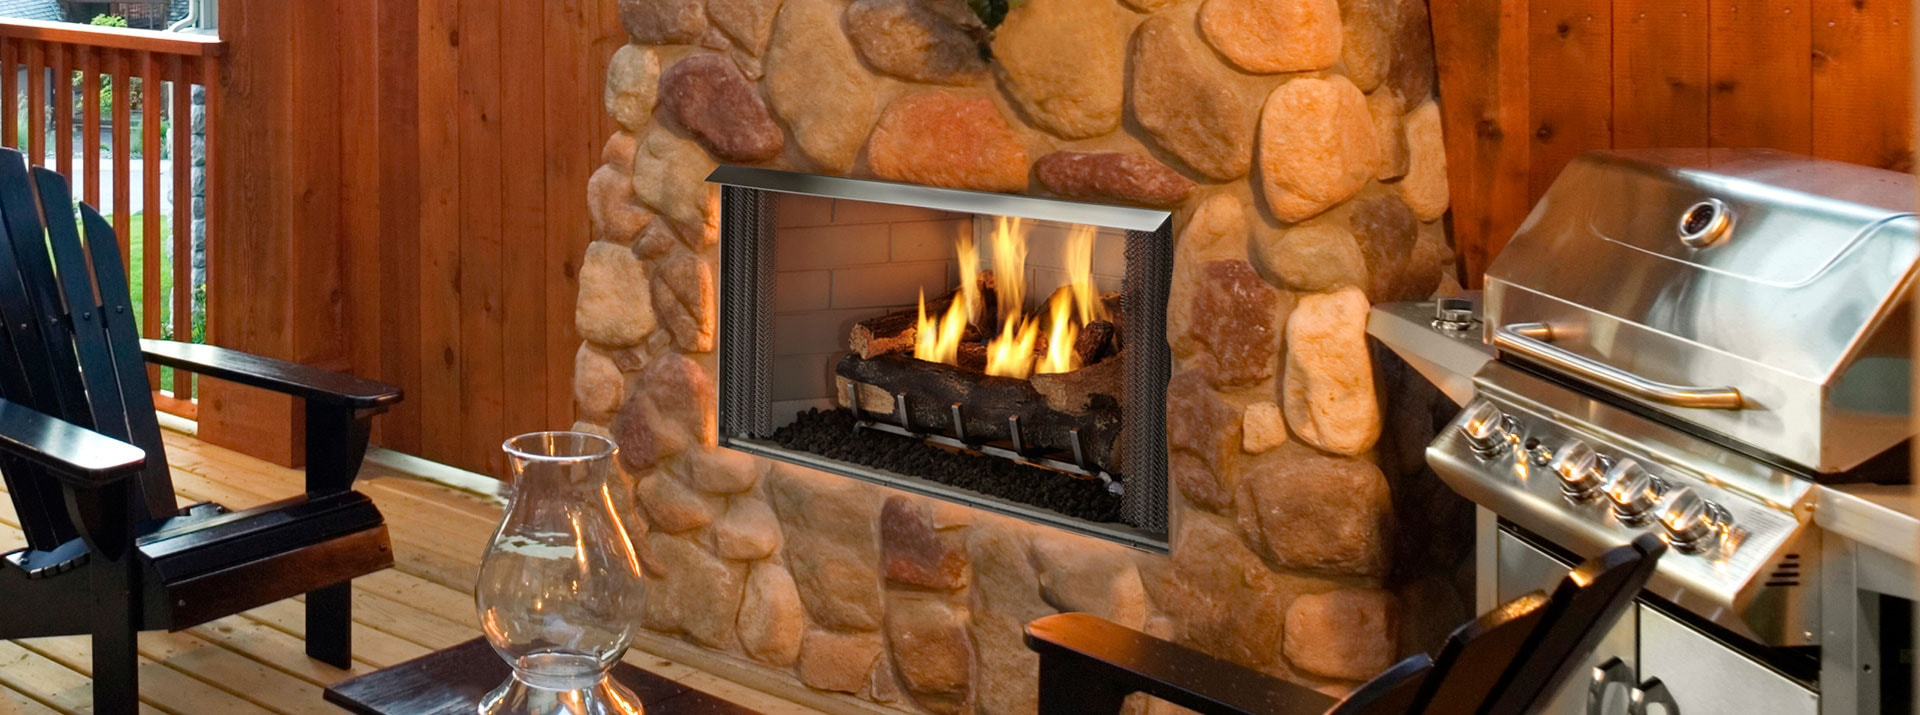 Gas Fireplace Door Replacement New Outdoor Lifestyles Villa Gas Pact Outdoor Fireplace